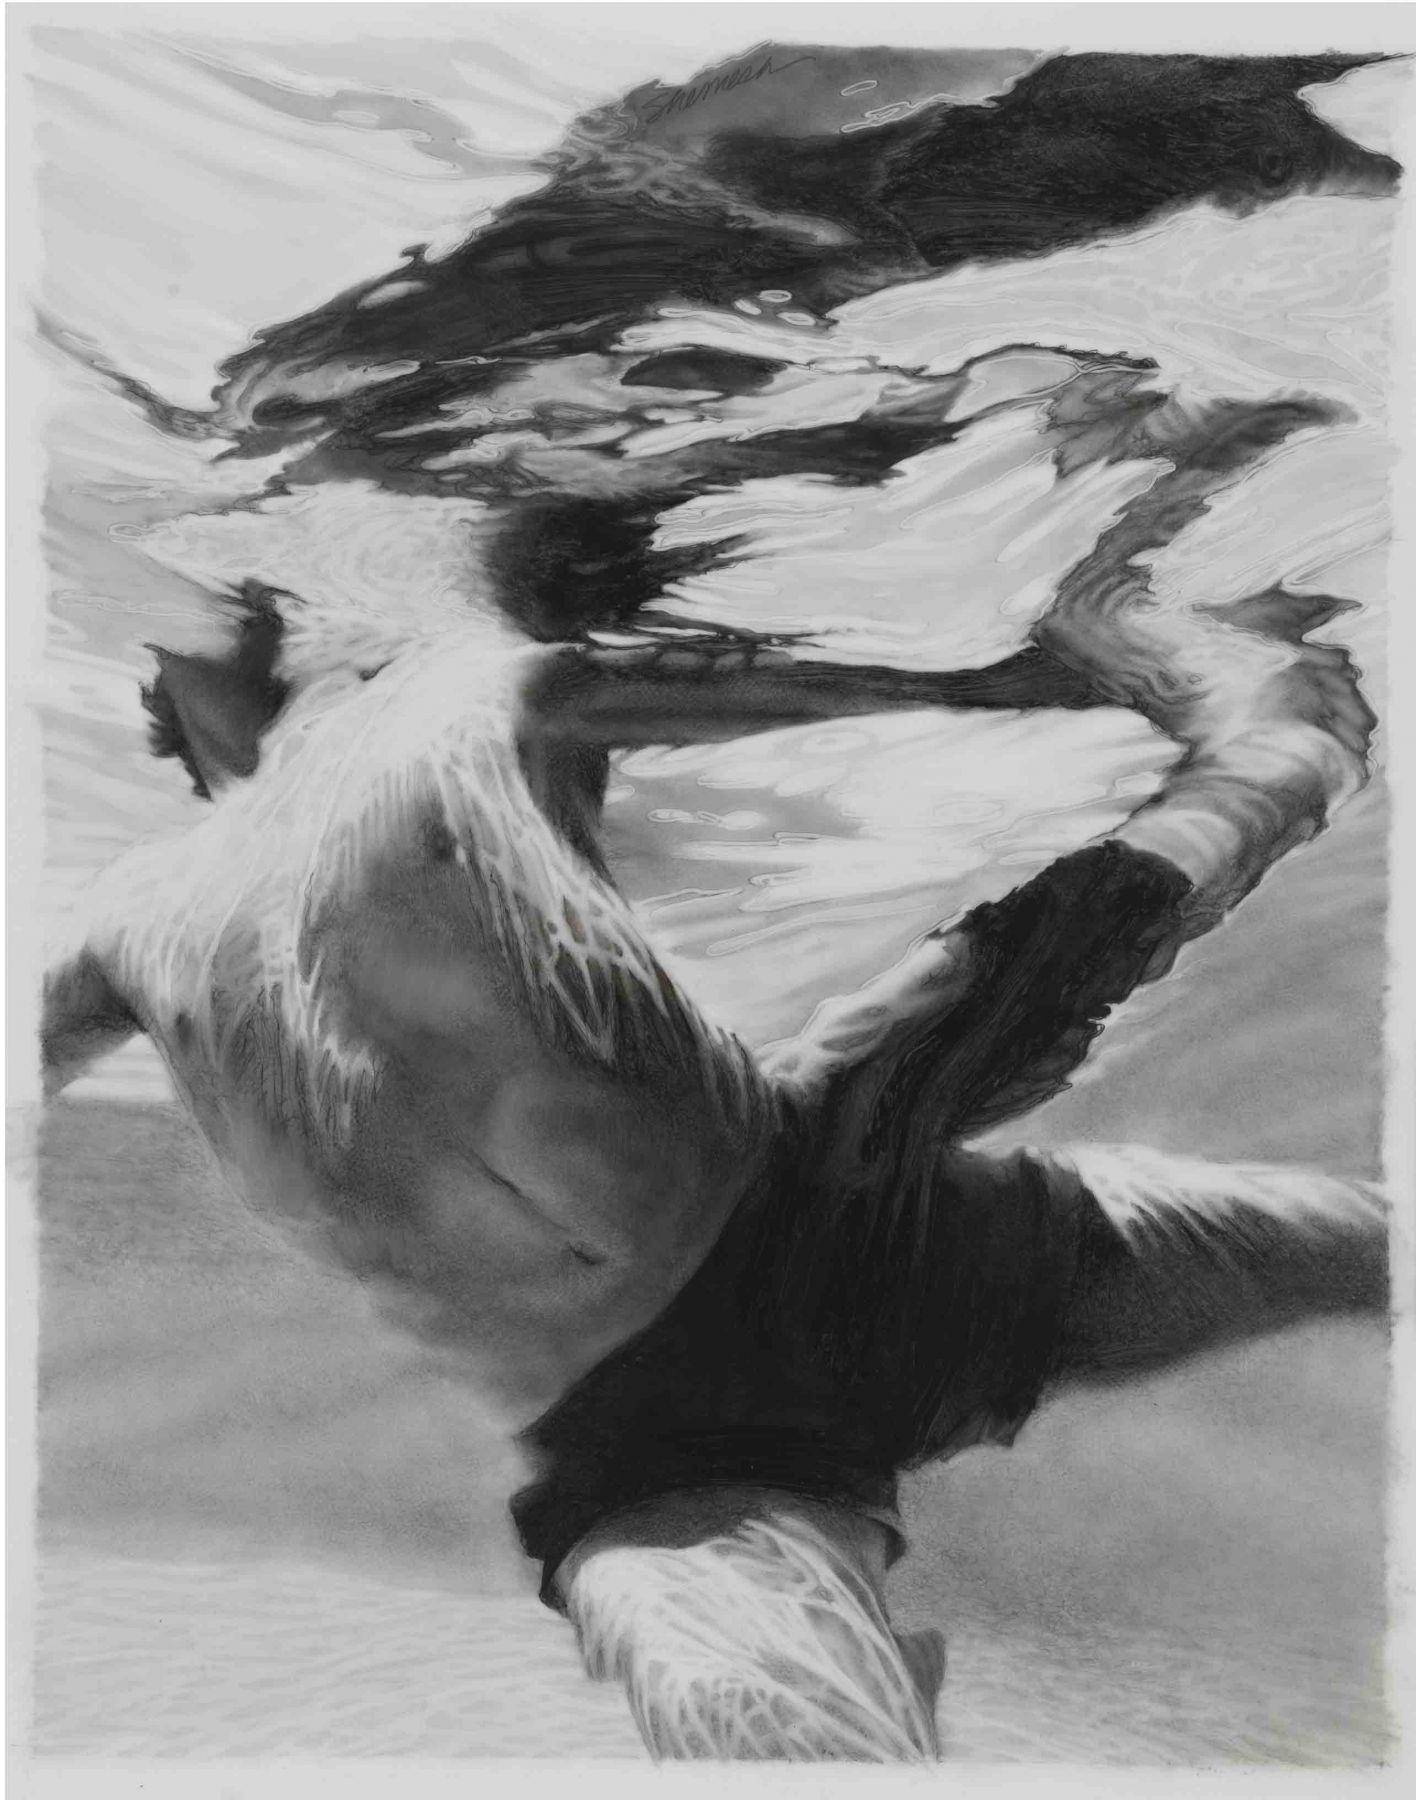 Lorraine Shemesh,  Lunge, 2014,  Graphite wash on mylar,   29-1/2 x 23,  Signed upper left. Underwater composition of a male form. Lorraine Shemesh is an American artist who abstracts the human form. She marries figure-based painting with abstract expressionist concerns.